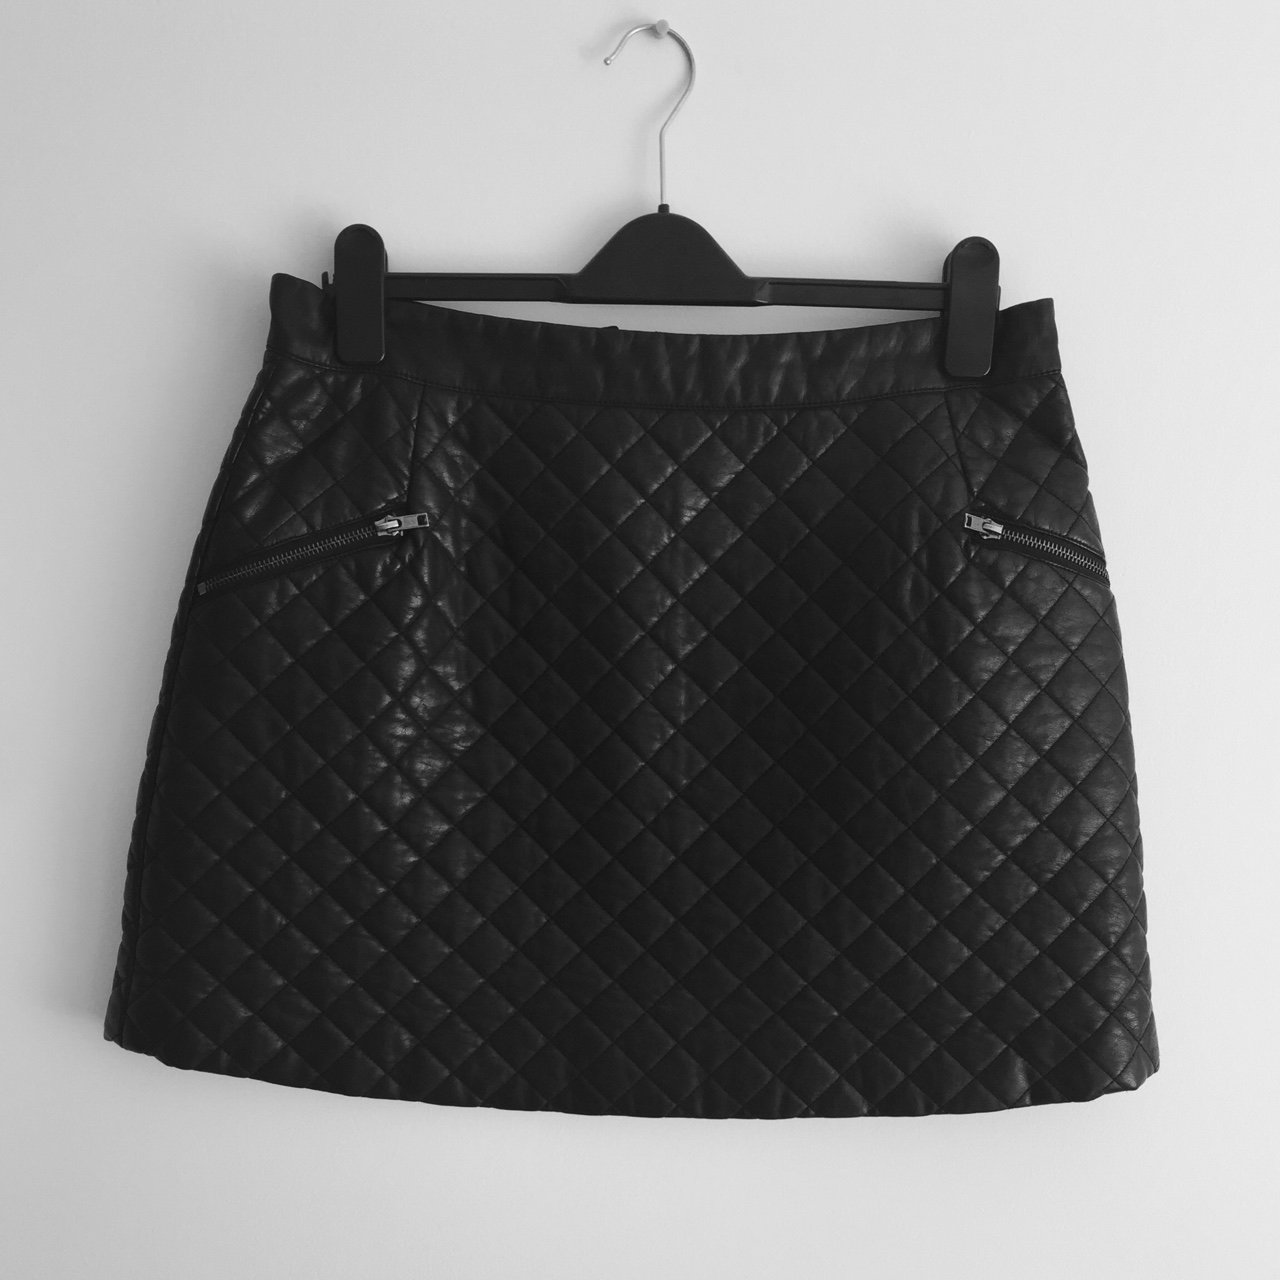 2fcfc11e2 Padded, leather skirt from Topshop. Perfect for making an - - Depop